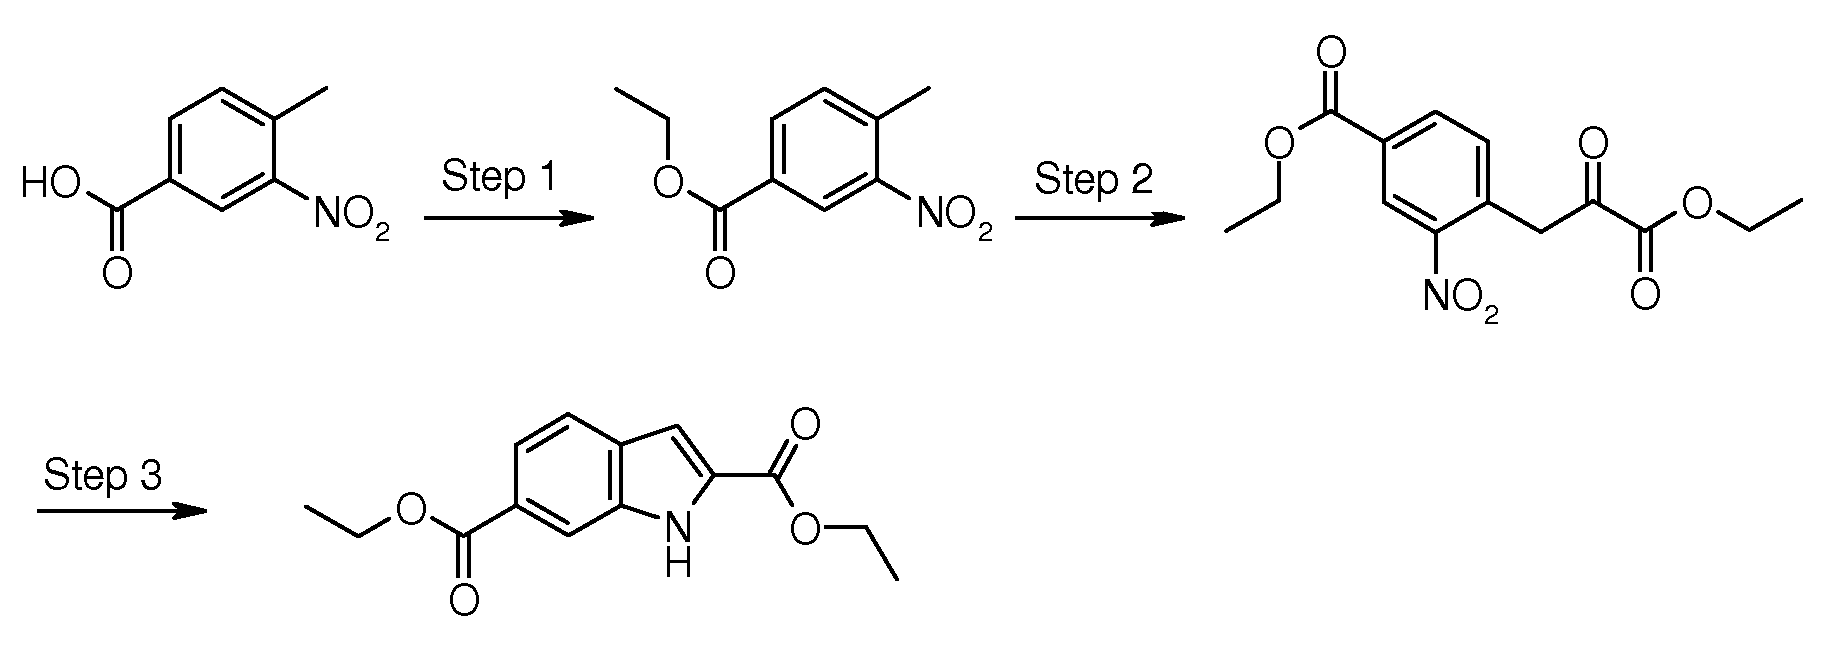 Synthesis of methyl benzoate from benzoic acid hazards